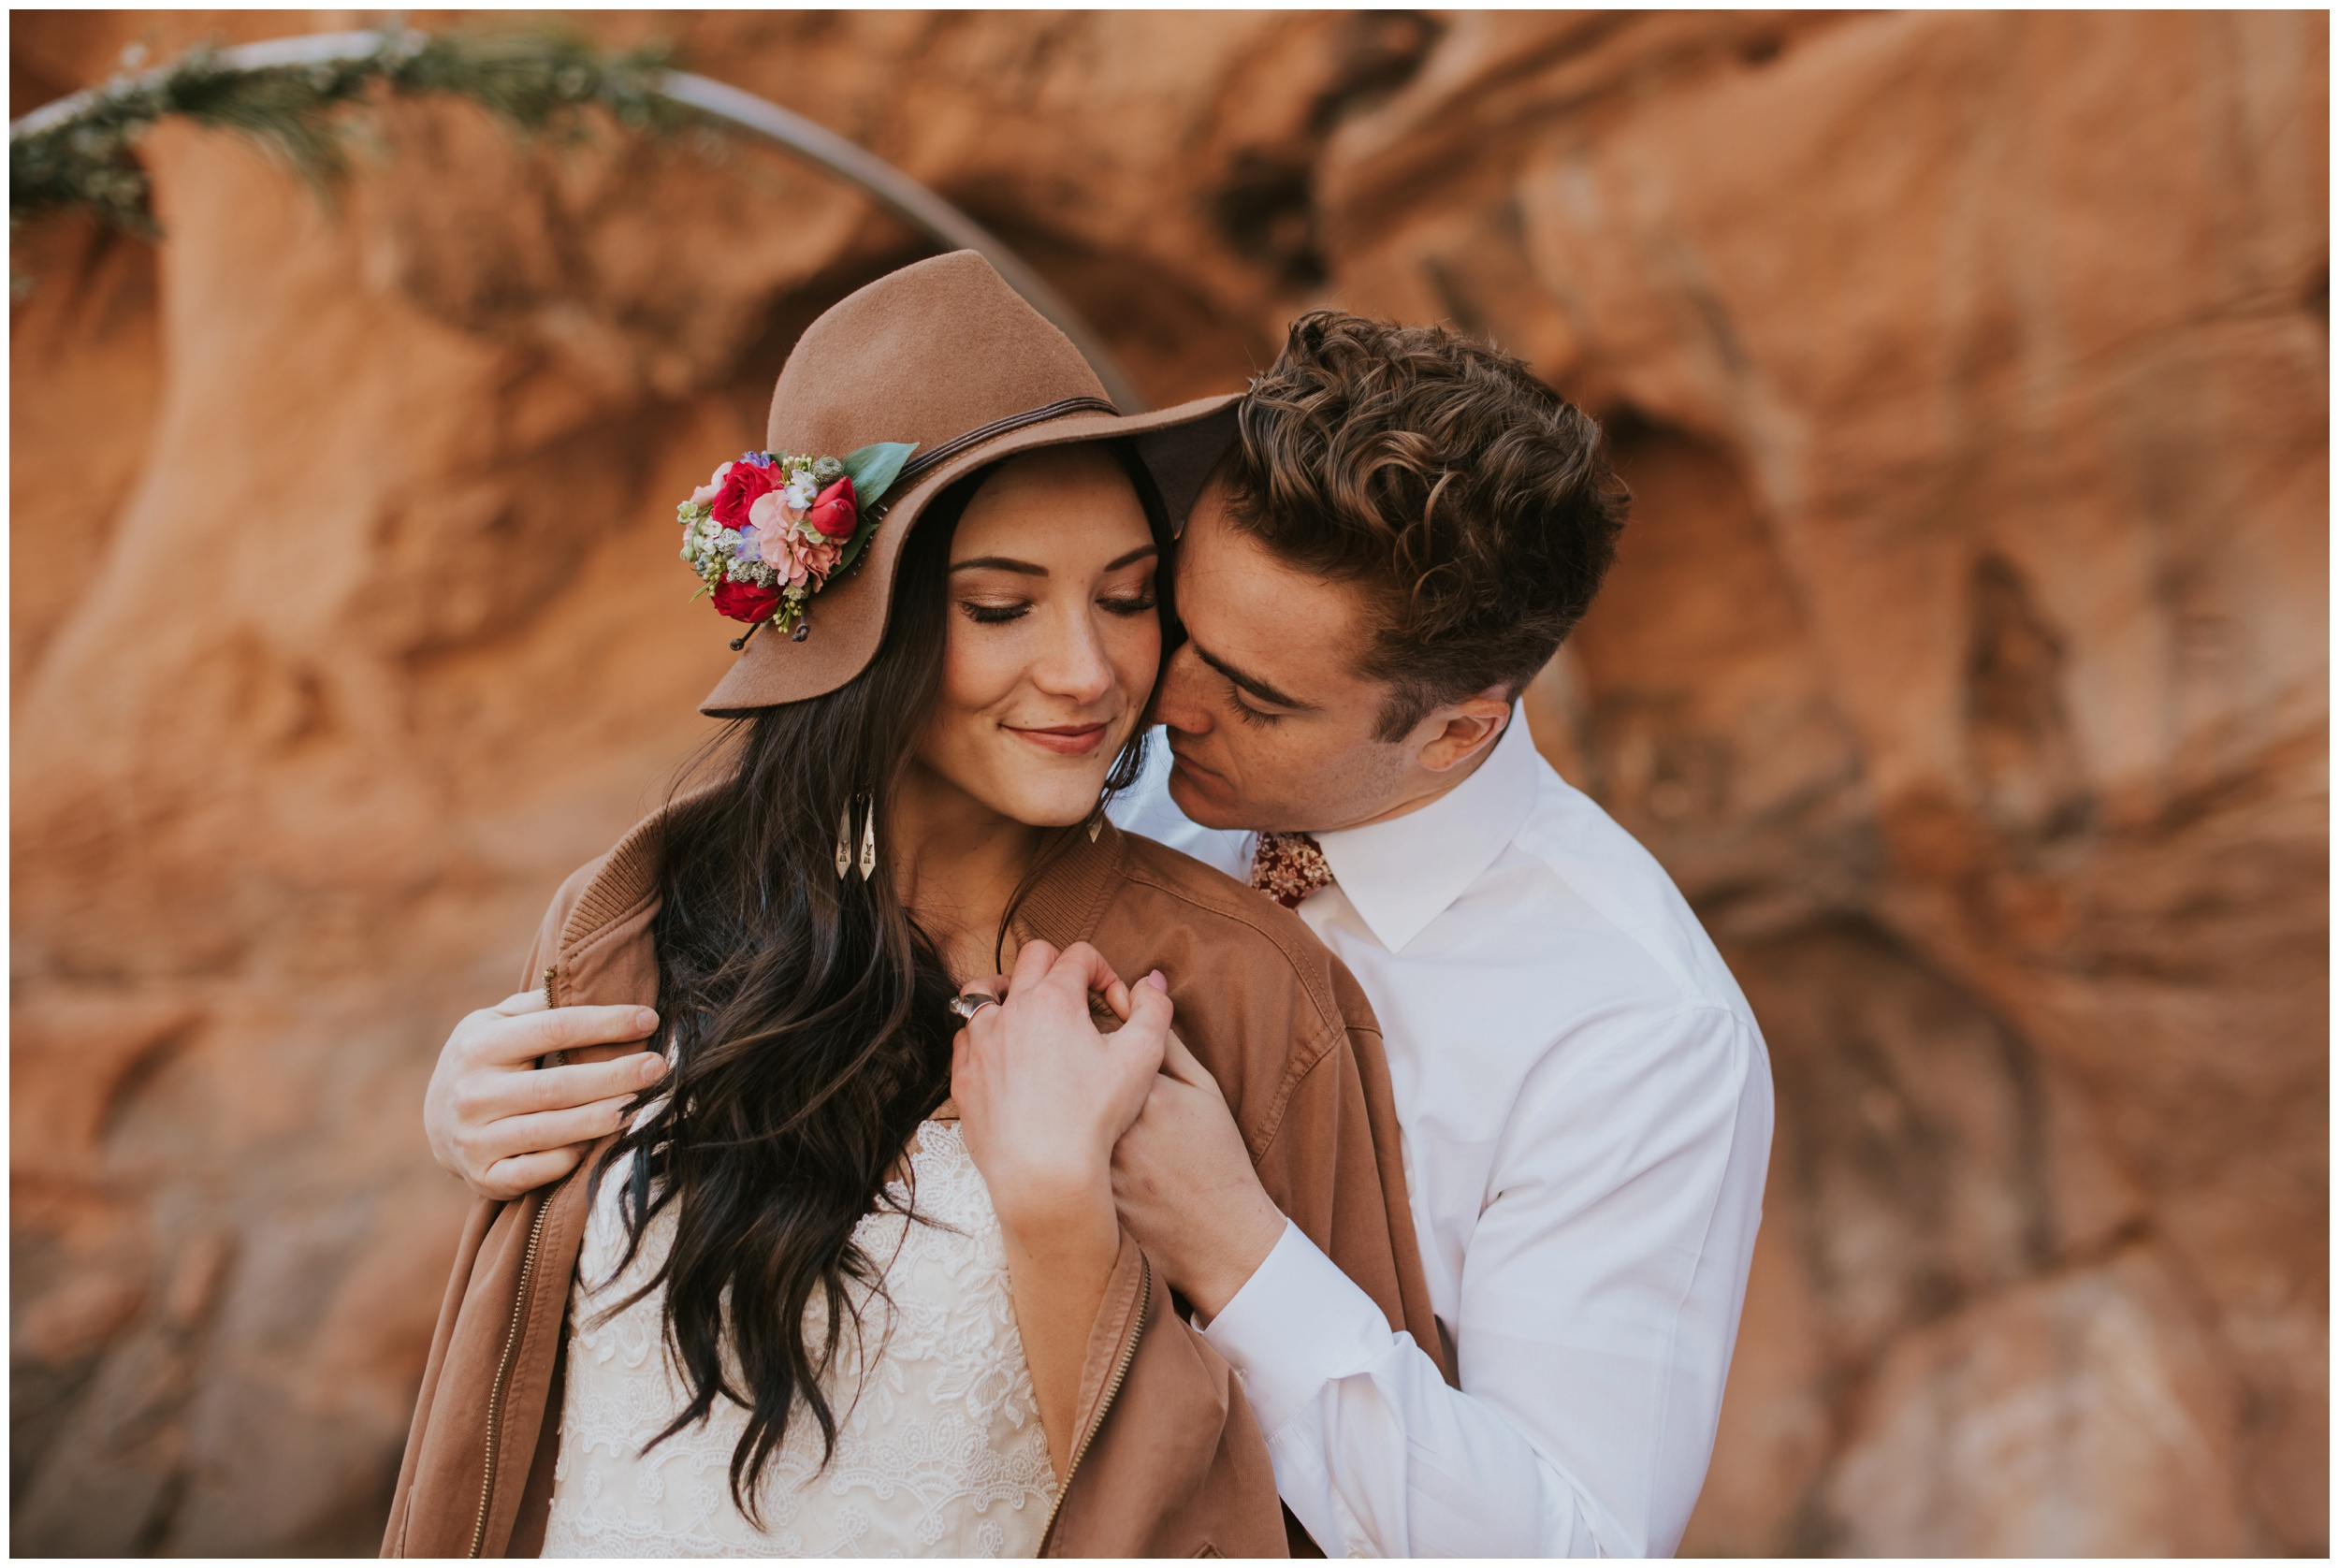 redrockutah-idahophotographer-utahphotographer-wedding-49.jpg